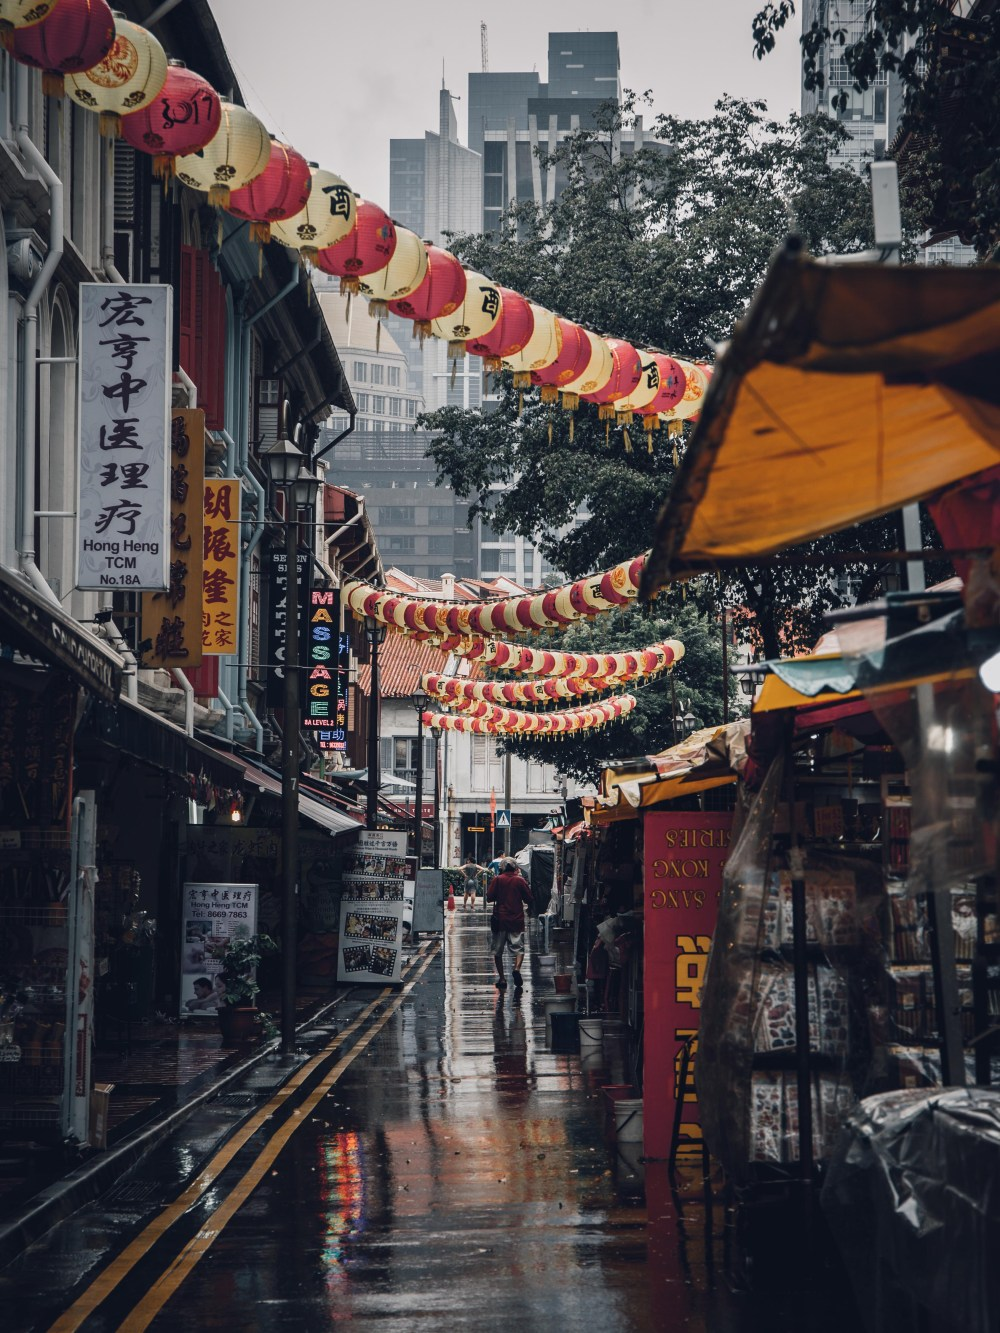 Cute Rain Hd Wallpapers Assorted Lanterns Hanged Above Alleyway Photo Free